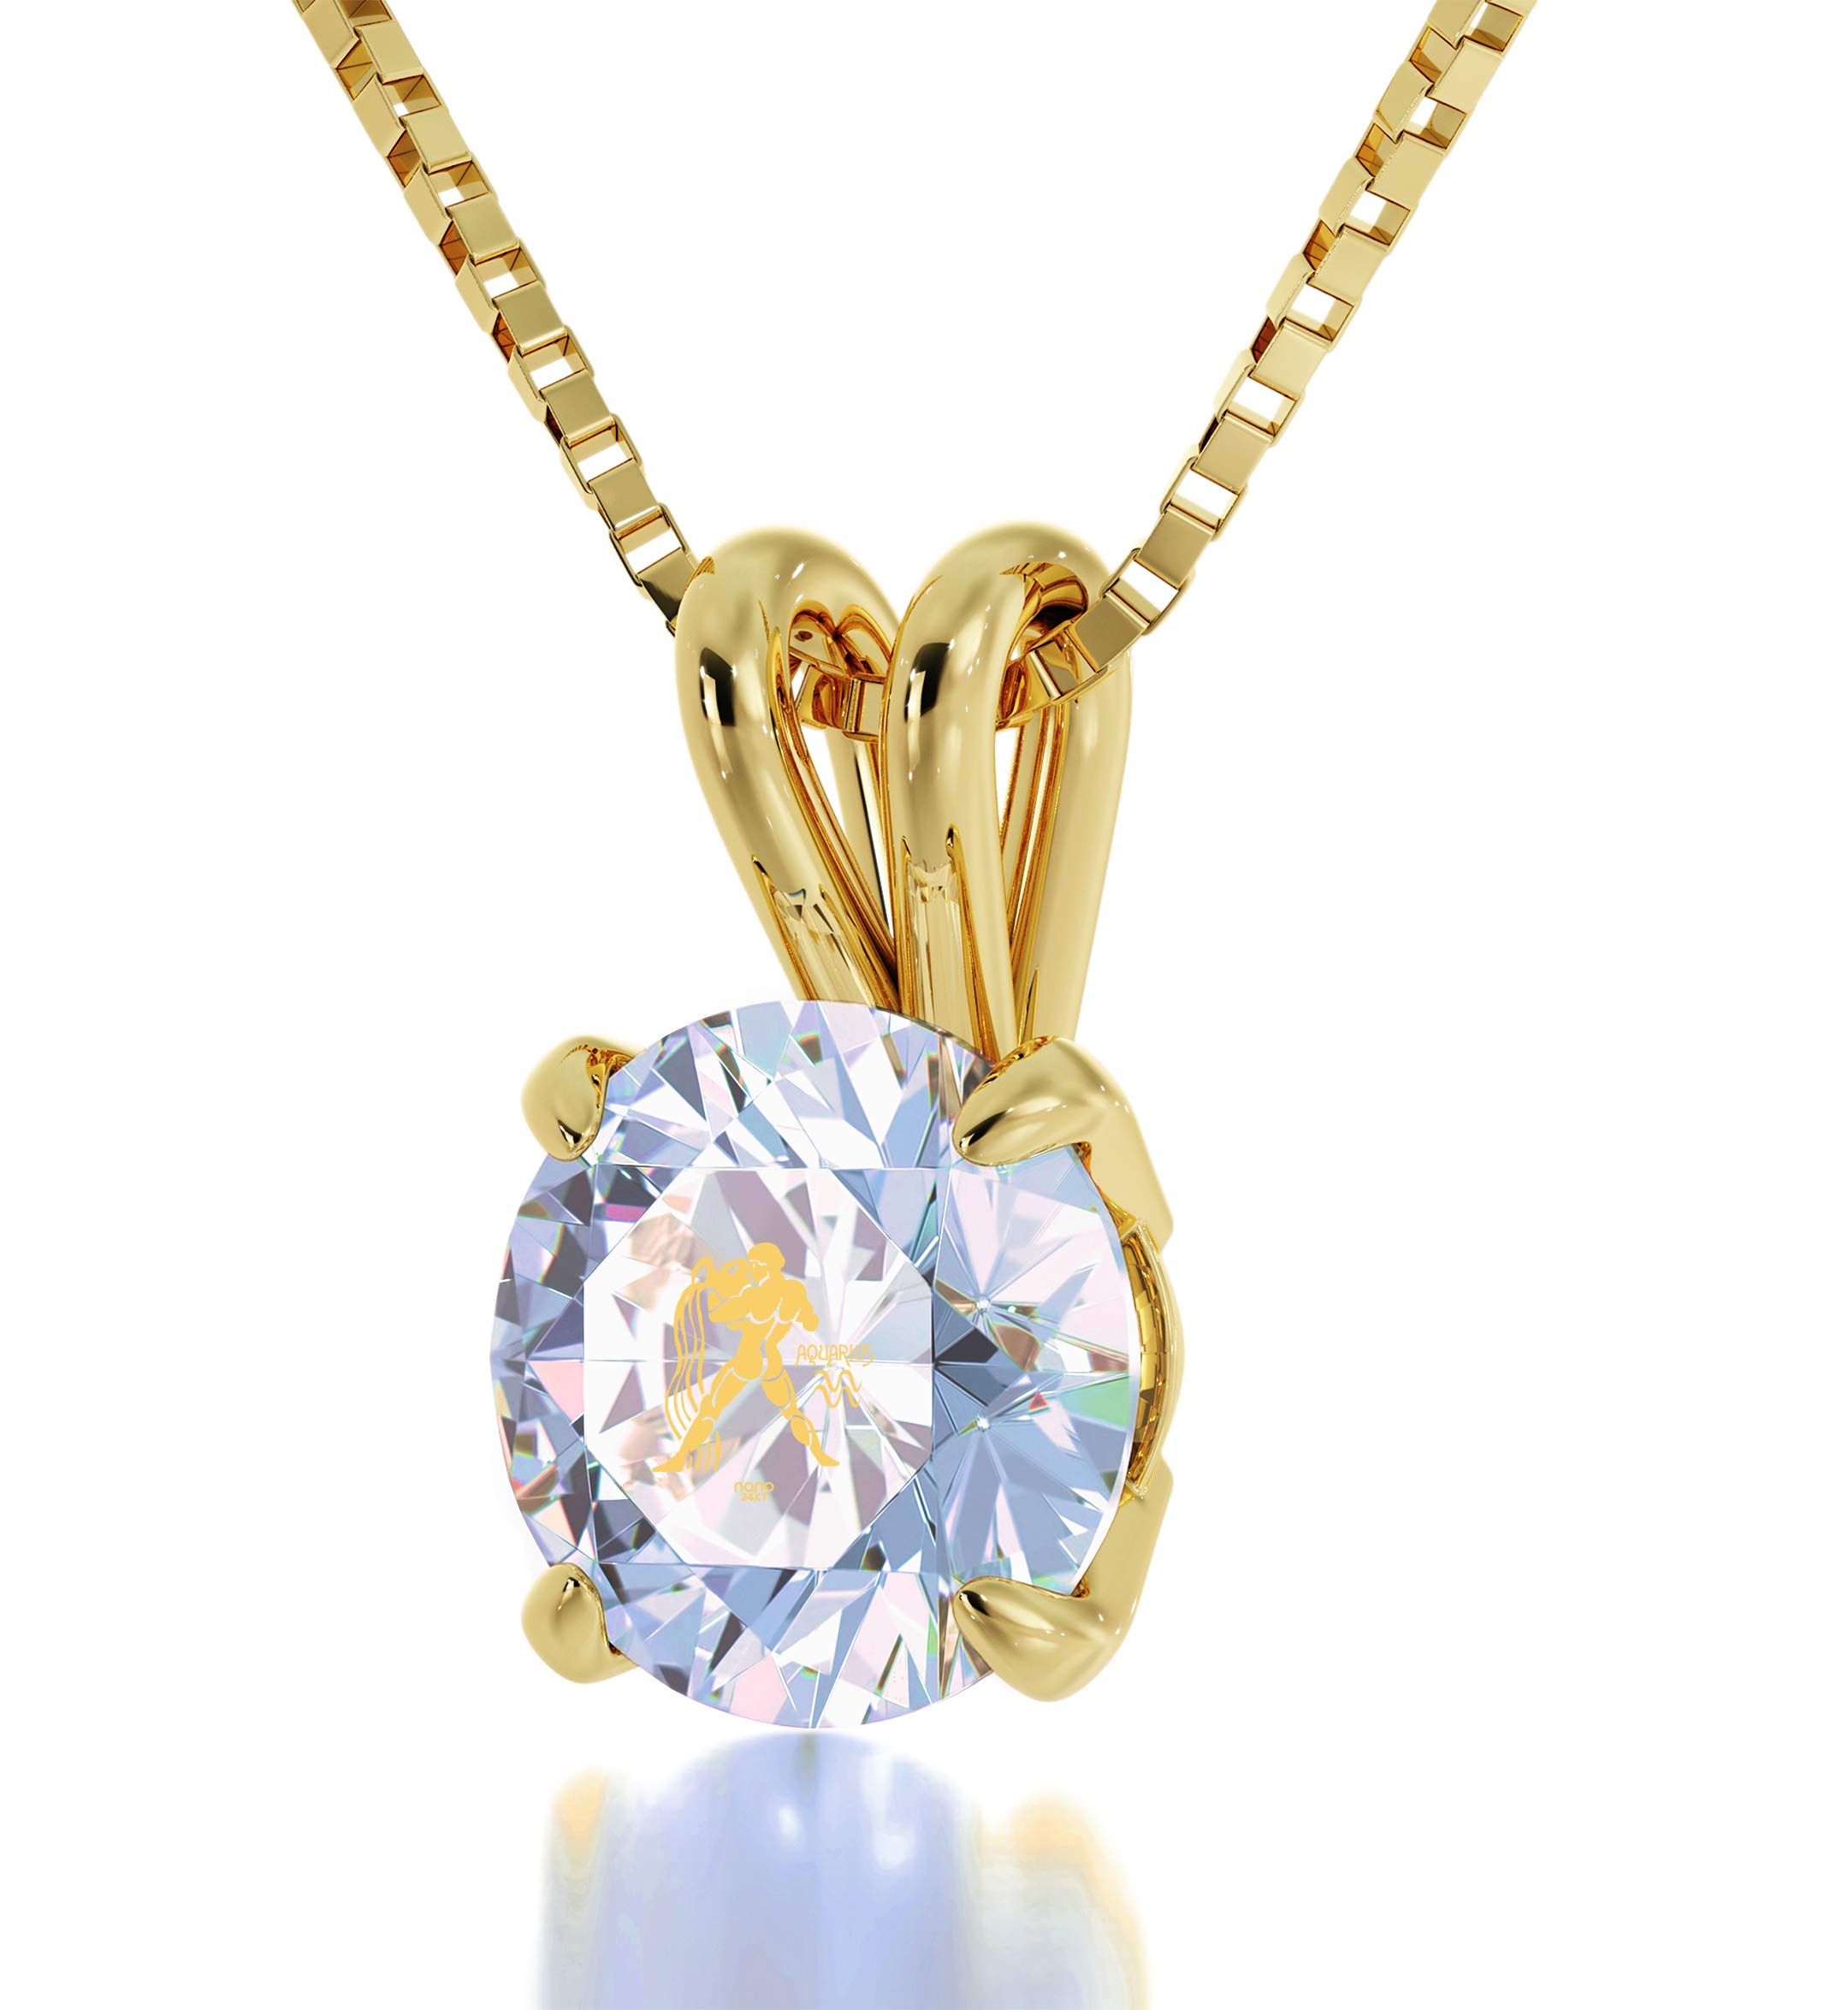 "14k Yellow Gold Aquarius Necklace Zodiac Pendant for Birthdays 20 January to 18 February 24k Gold Inscribed with Star Sign and Symbol on Solitaire Set Swarovski Crystal Stone, 18"" Gold Filled Chain"